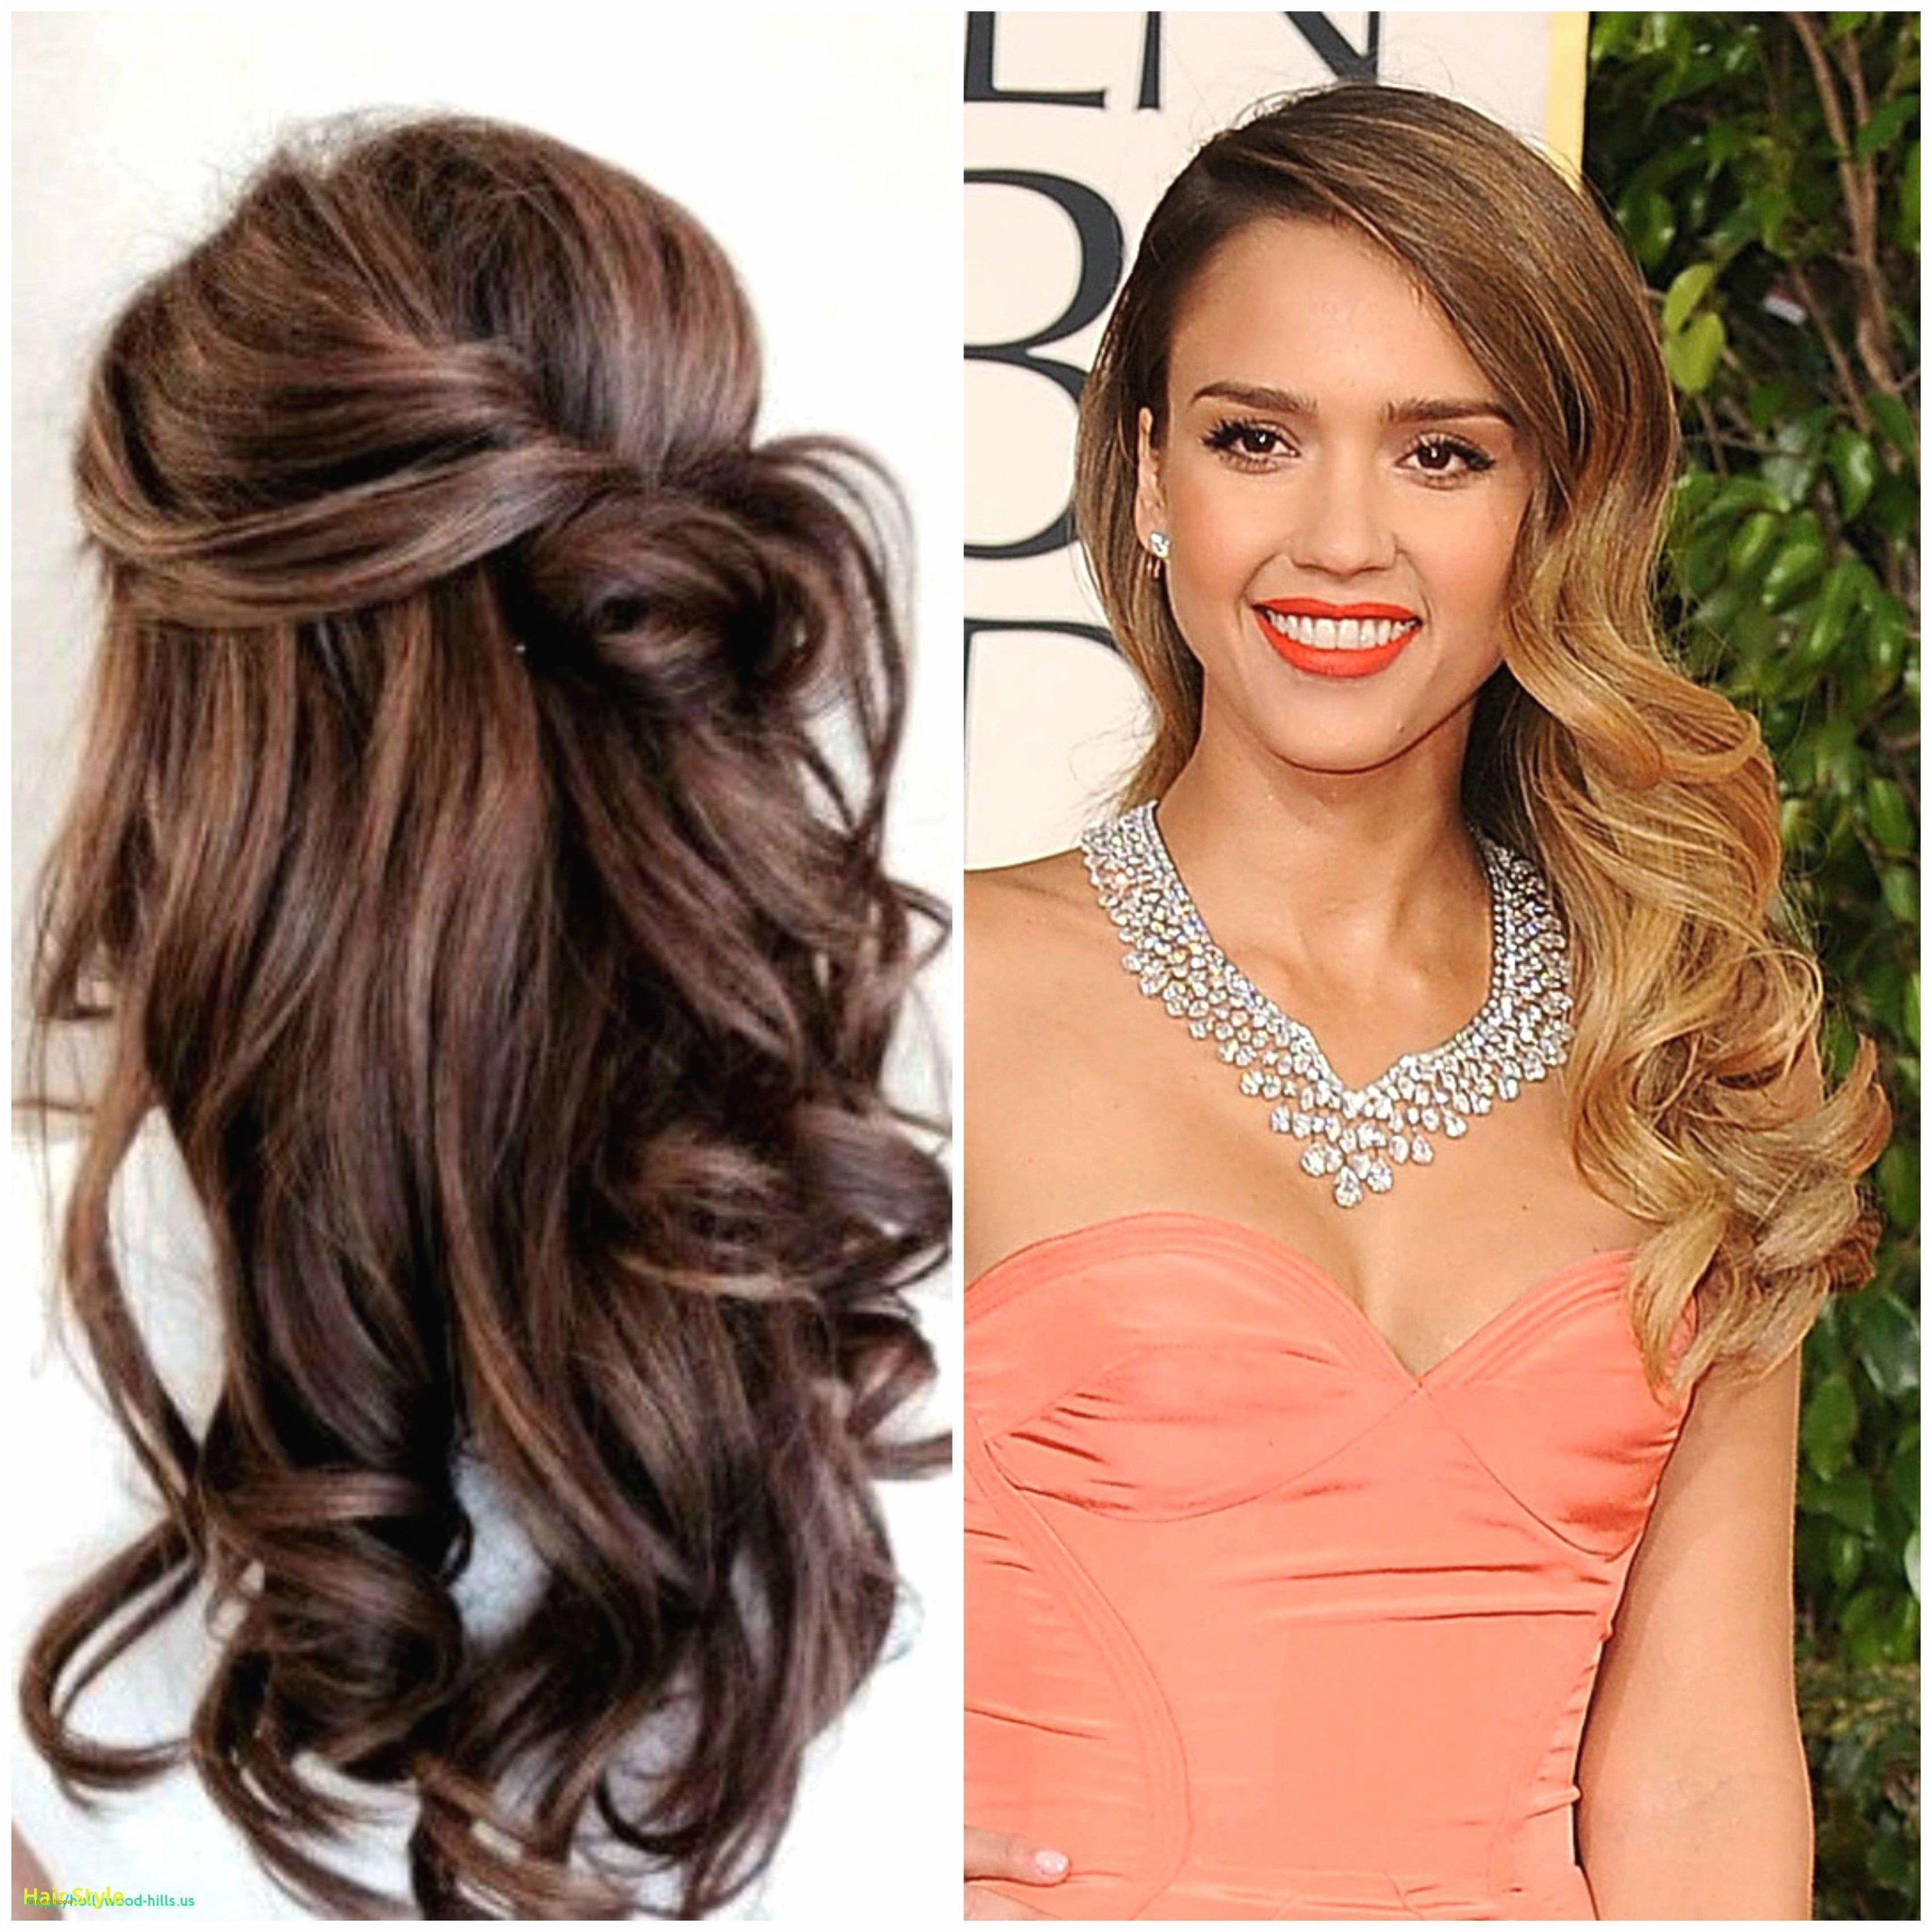 Cute Hairstyles Ideas Tumblr Fantastic Cute Hairstyles for Long Hair Tumblr